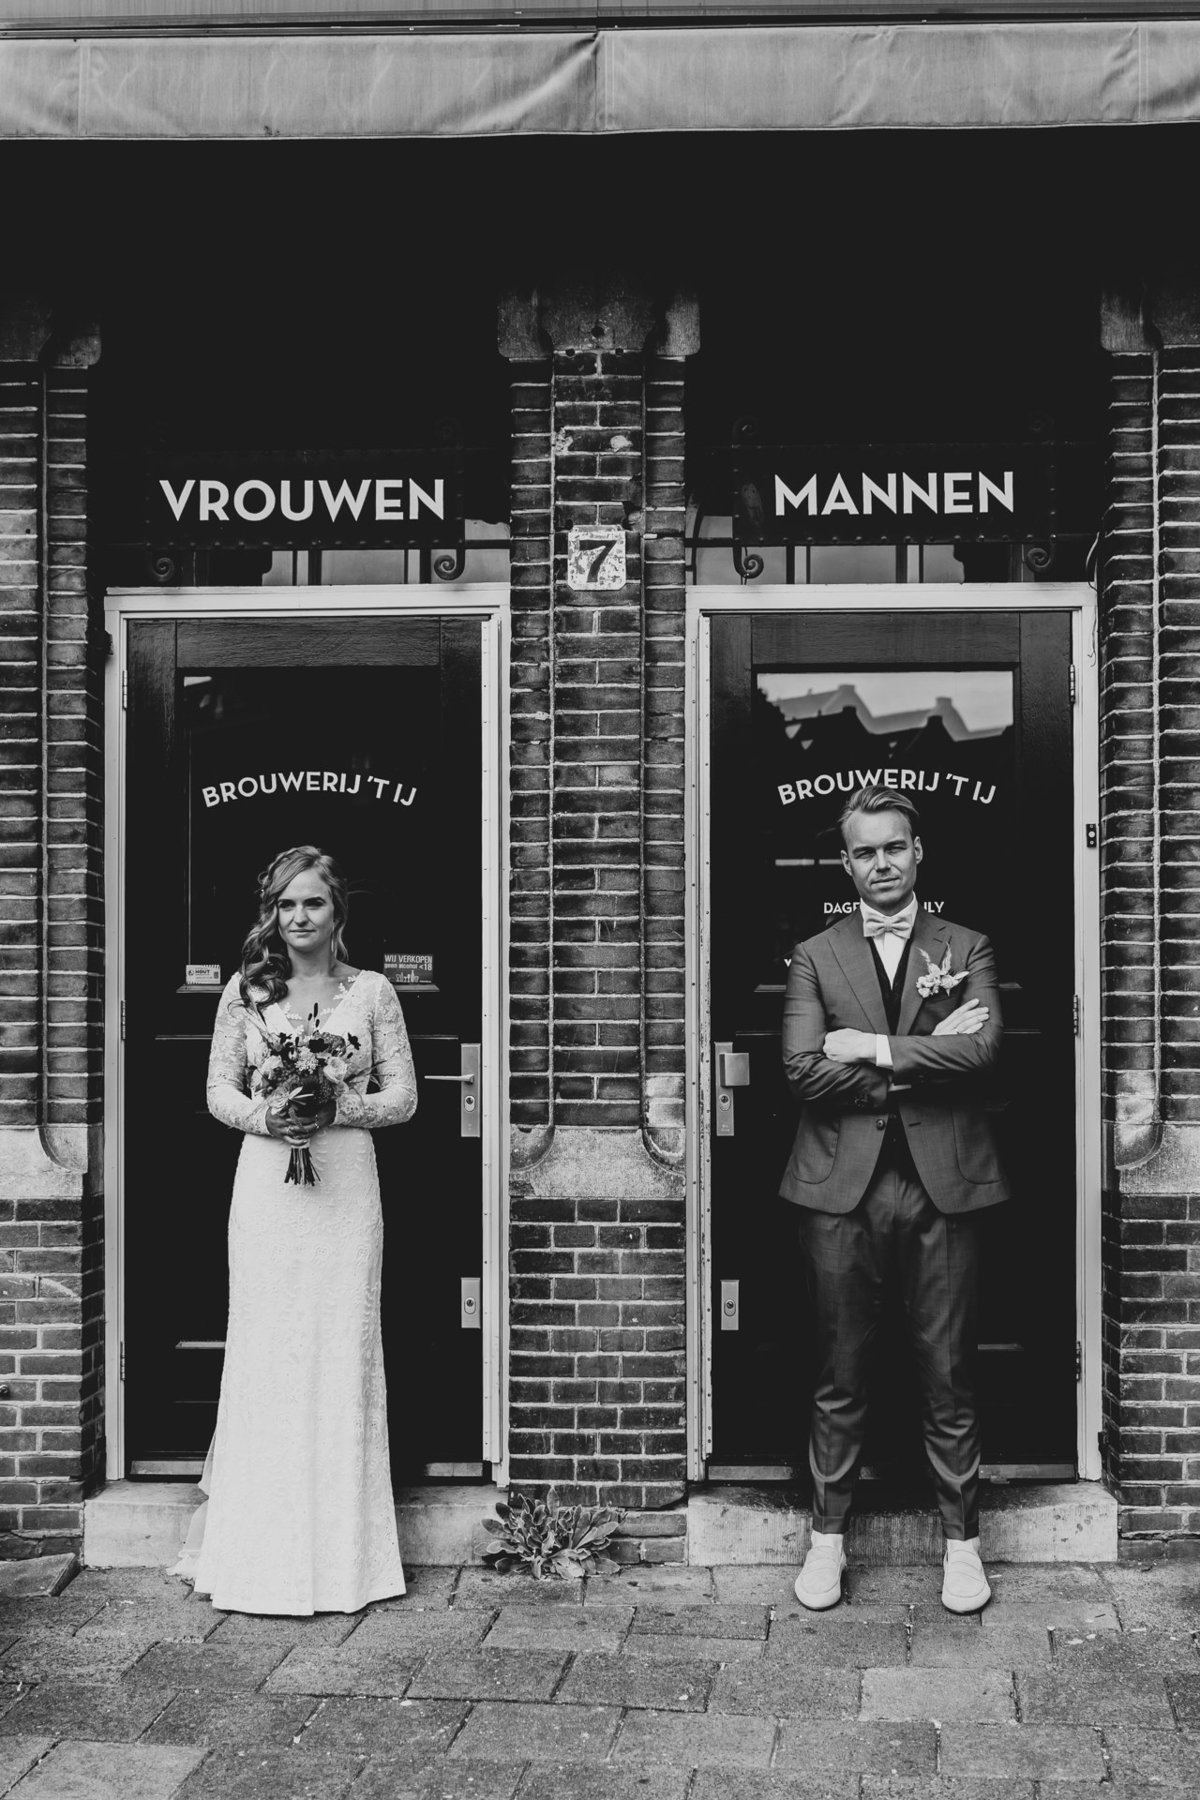 Wedding-shoot-Dorine&Jerry-door-Lotte-Bosschieter-photography_34